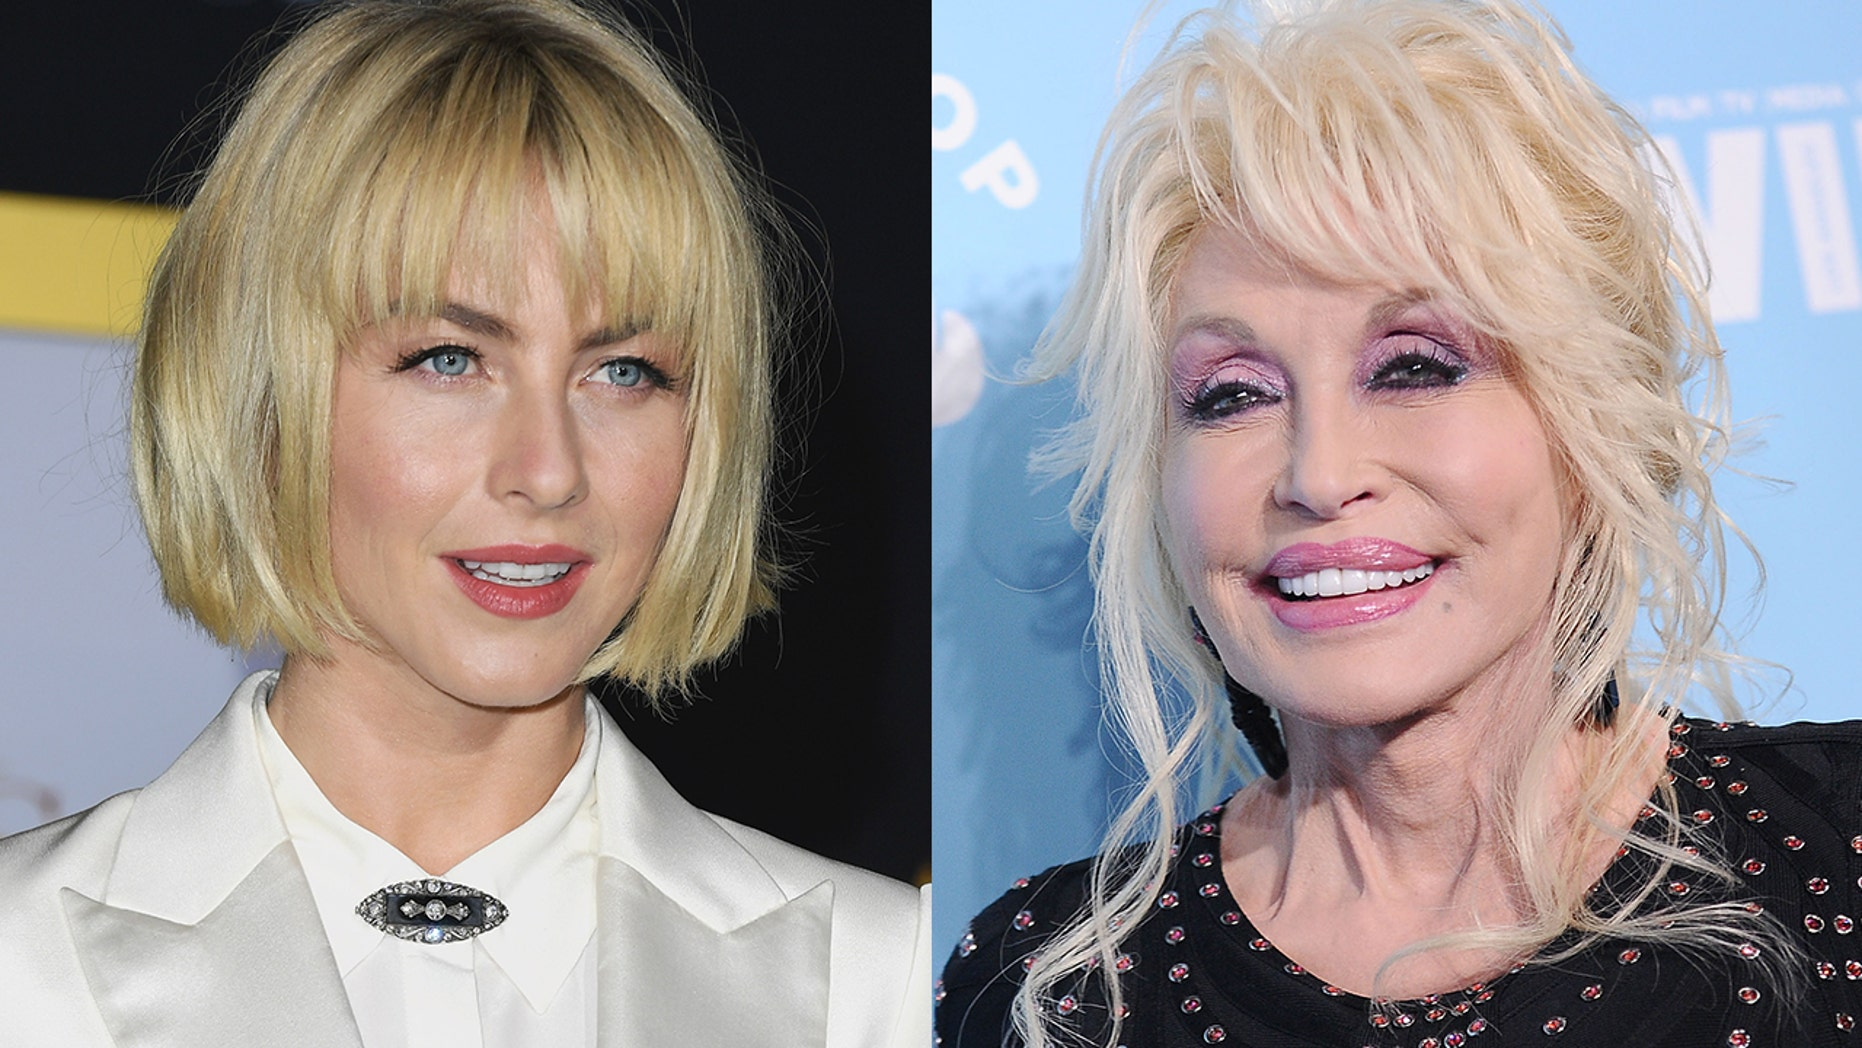 Dolly Parton's new Netflix anthology series will feature Julianne Hough as Jolene.